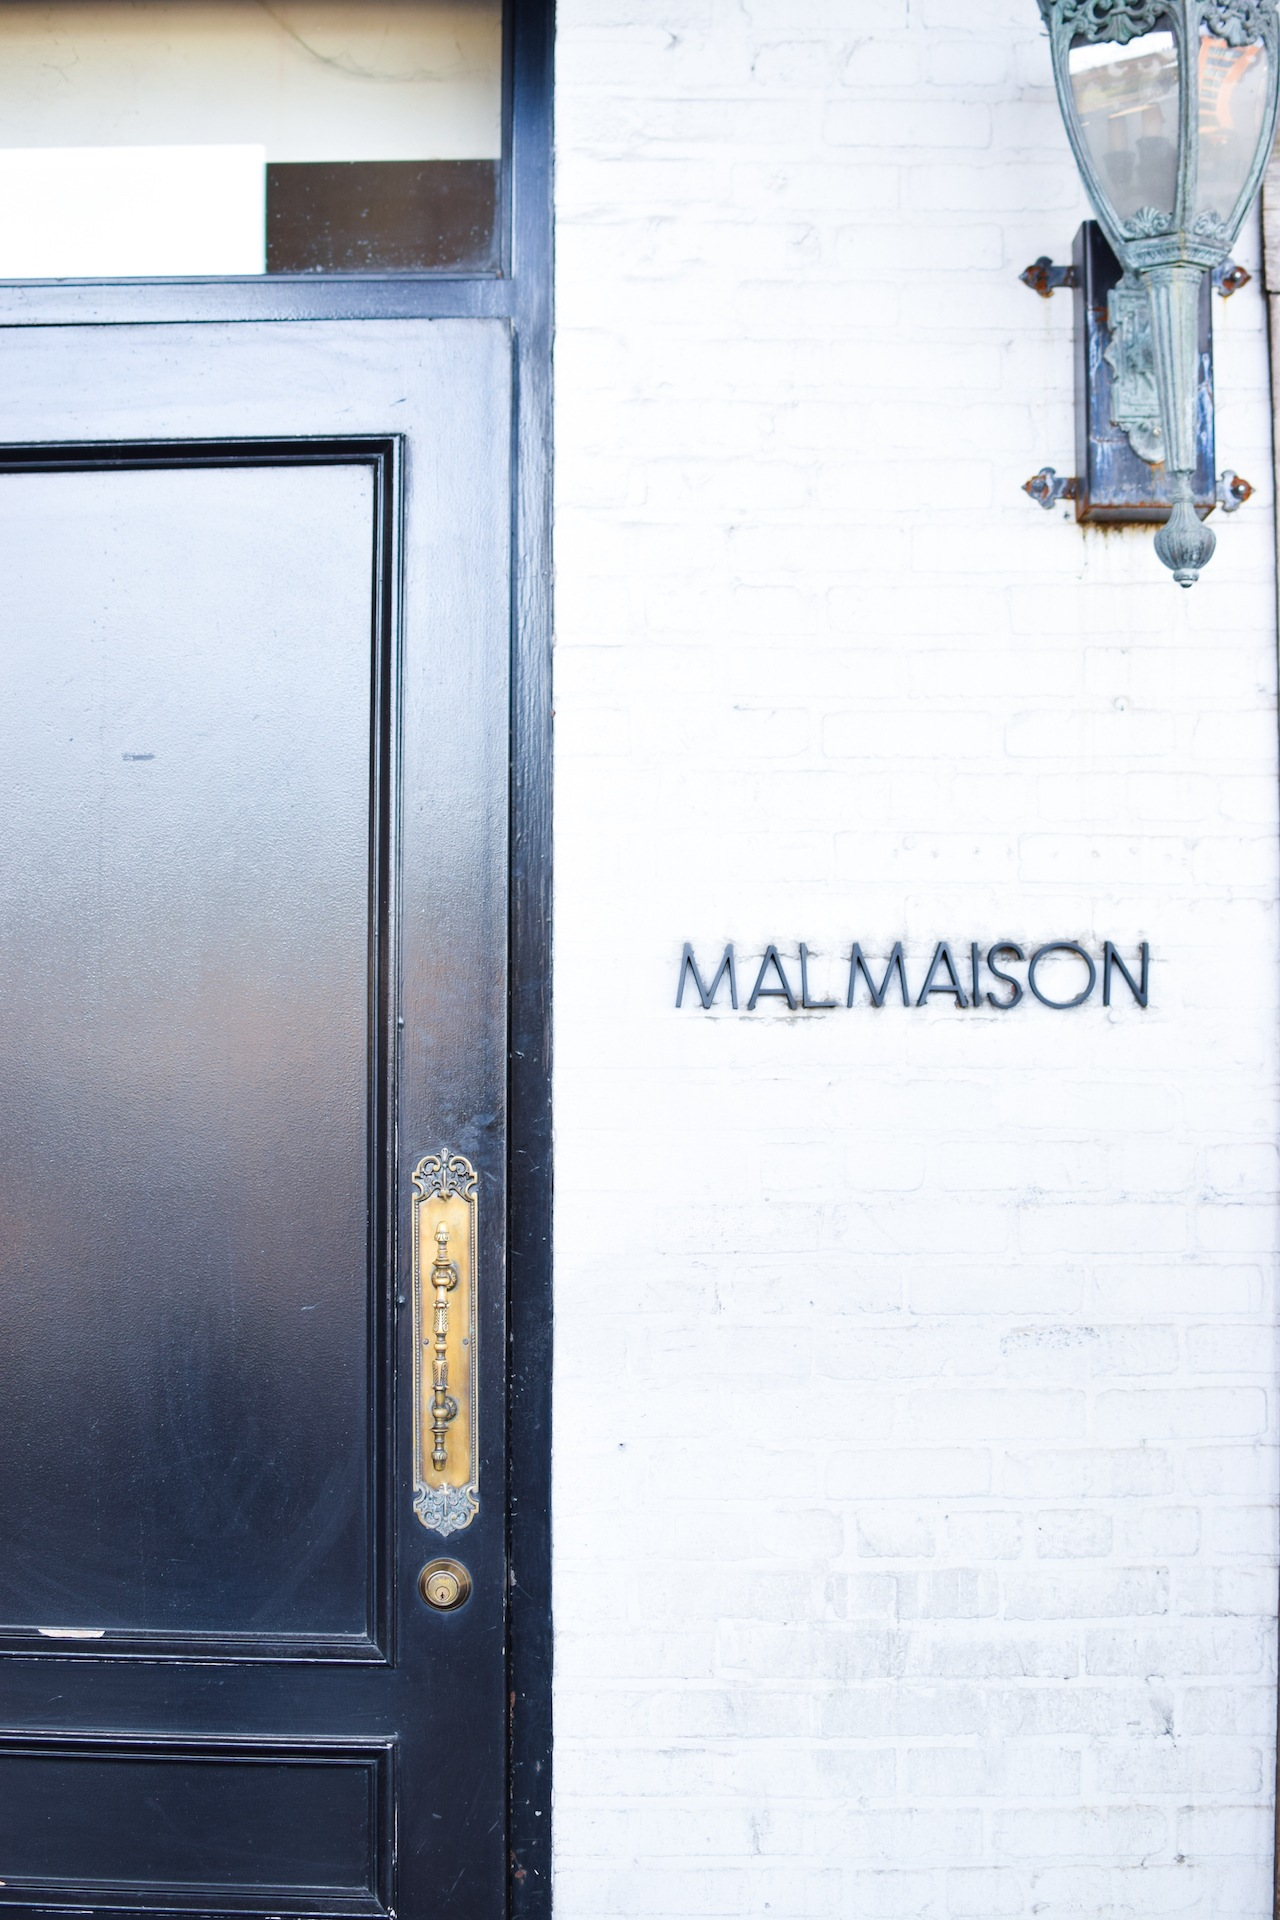 malmaison georgetown restaurant review